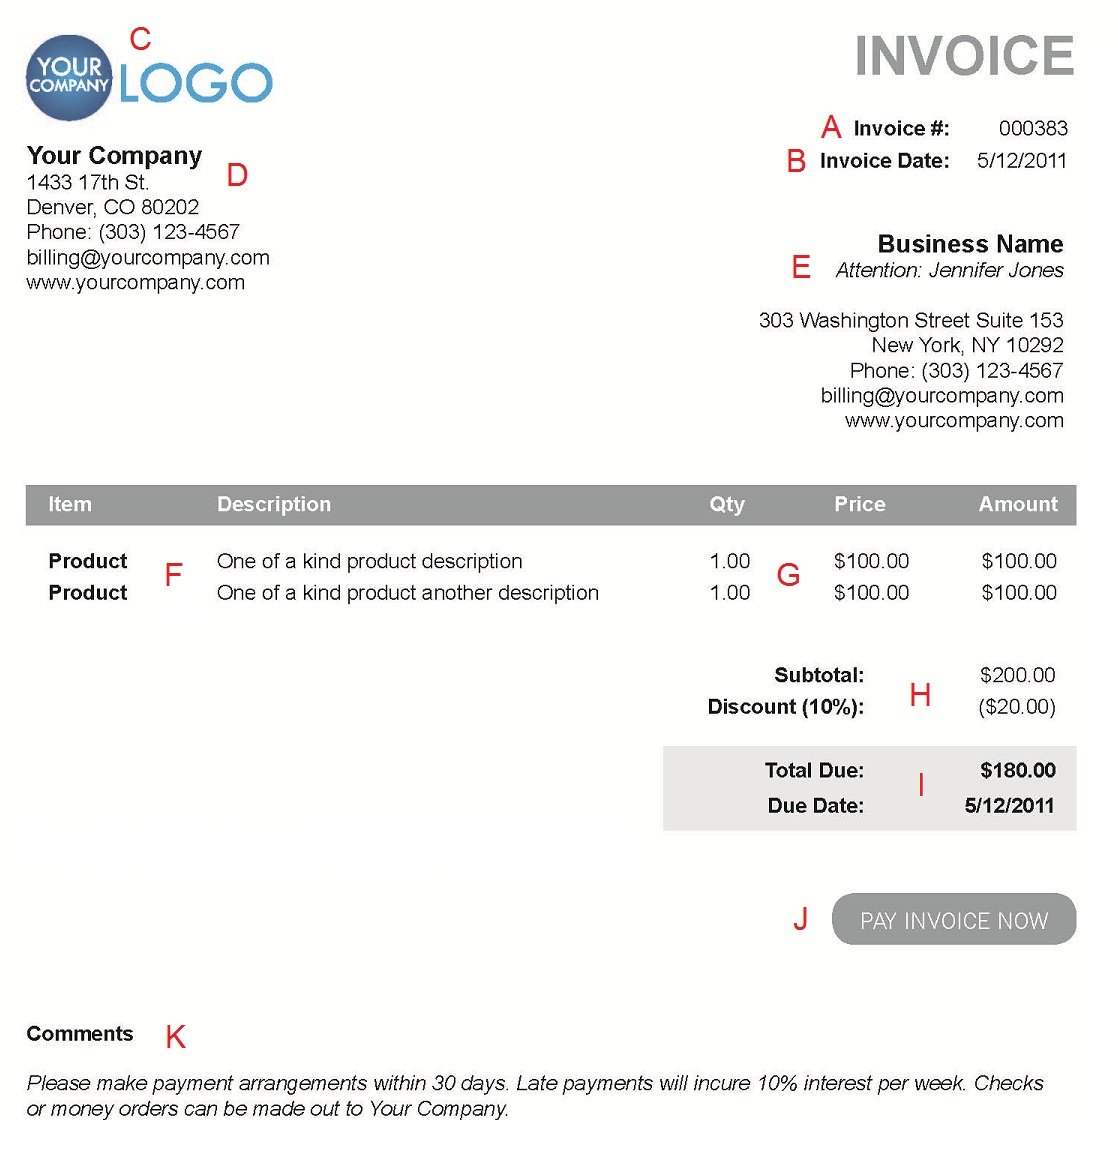 Ebitus  Ravishing The  Different Sections Of An Electronic Payment Invoice With Lovely A  With Endearing Free Excel Invoice Also Payment Upon Receipt Of Invoice In Addition Sample Invoice Template Free And Credit Memo Invoice As Well As Xero Custom Invoice Additionally Invoice Template Images From Paysimplecom With Ebitus  Lovely The  Different Sections Of An Electronic Payment Invoice With Endearing A  And Ravishing Free Excel Invoice Also Payment Upon Receipt Of Invoice In Addition Sample Invoice Template Free From Paysimplecom